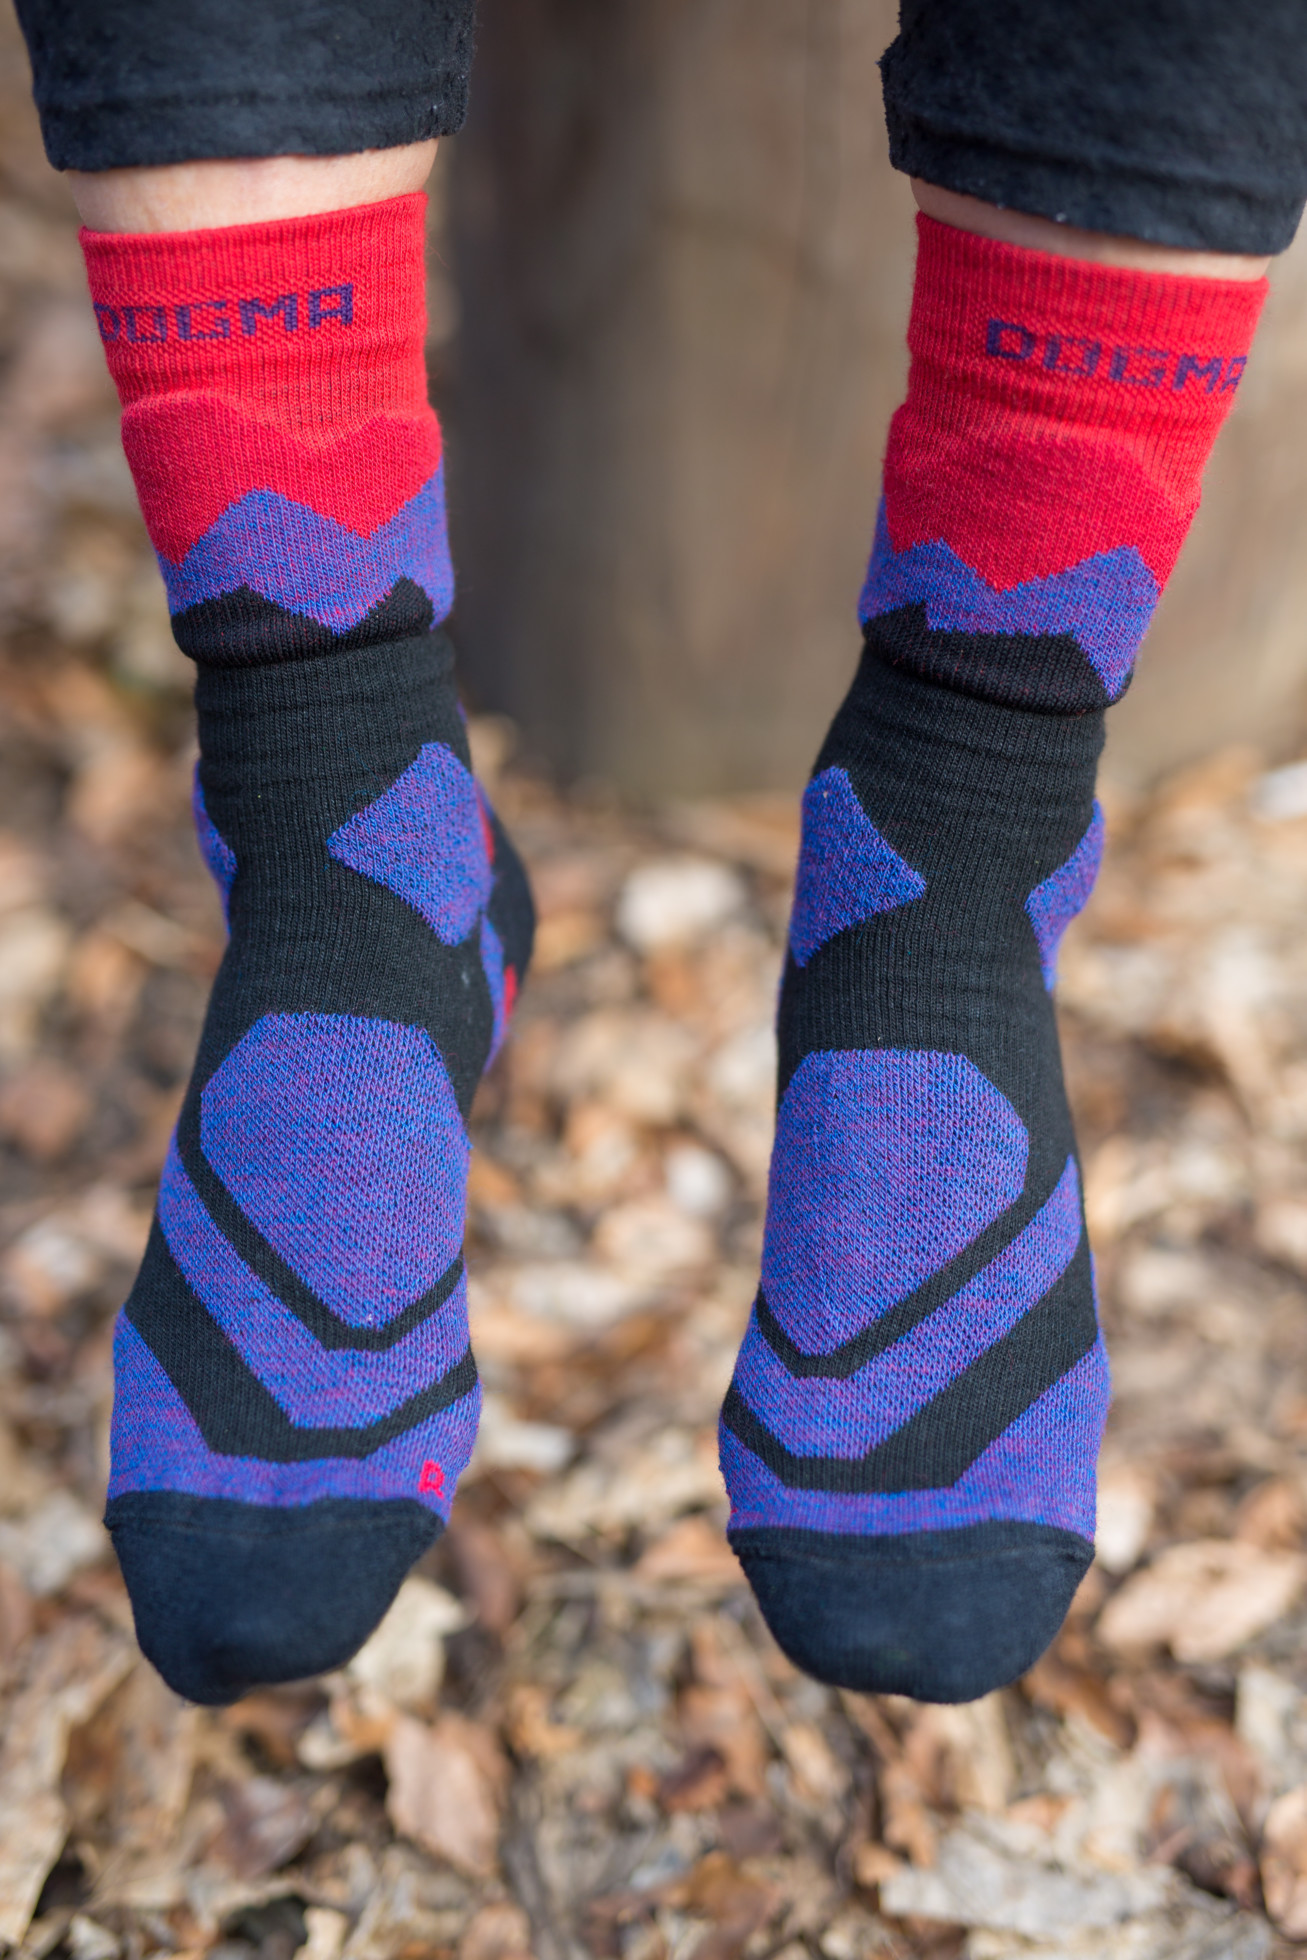 hiking socks in purple and fiery red color